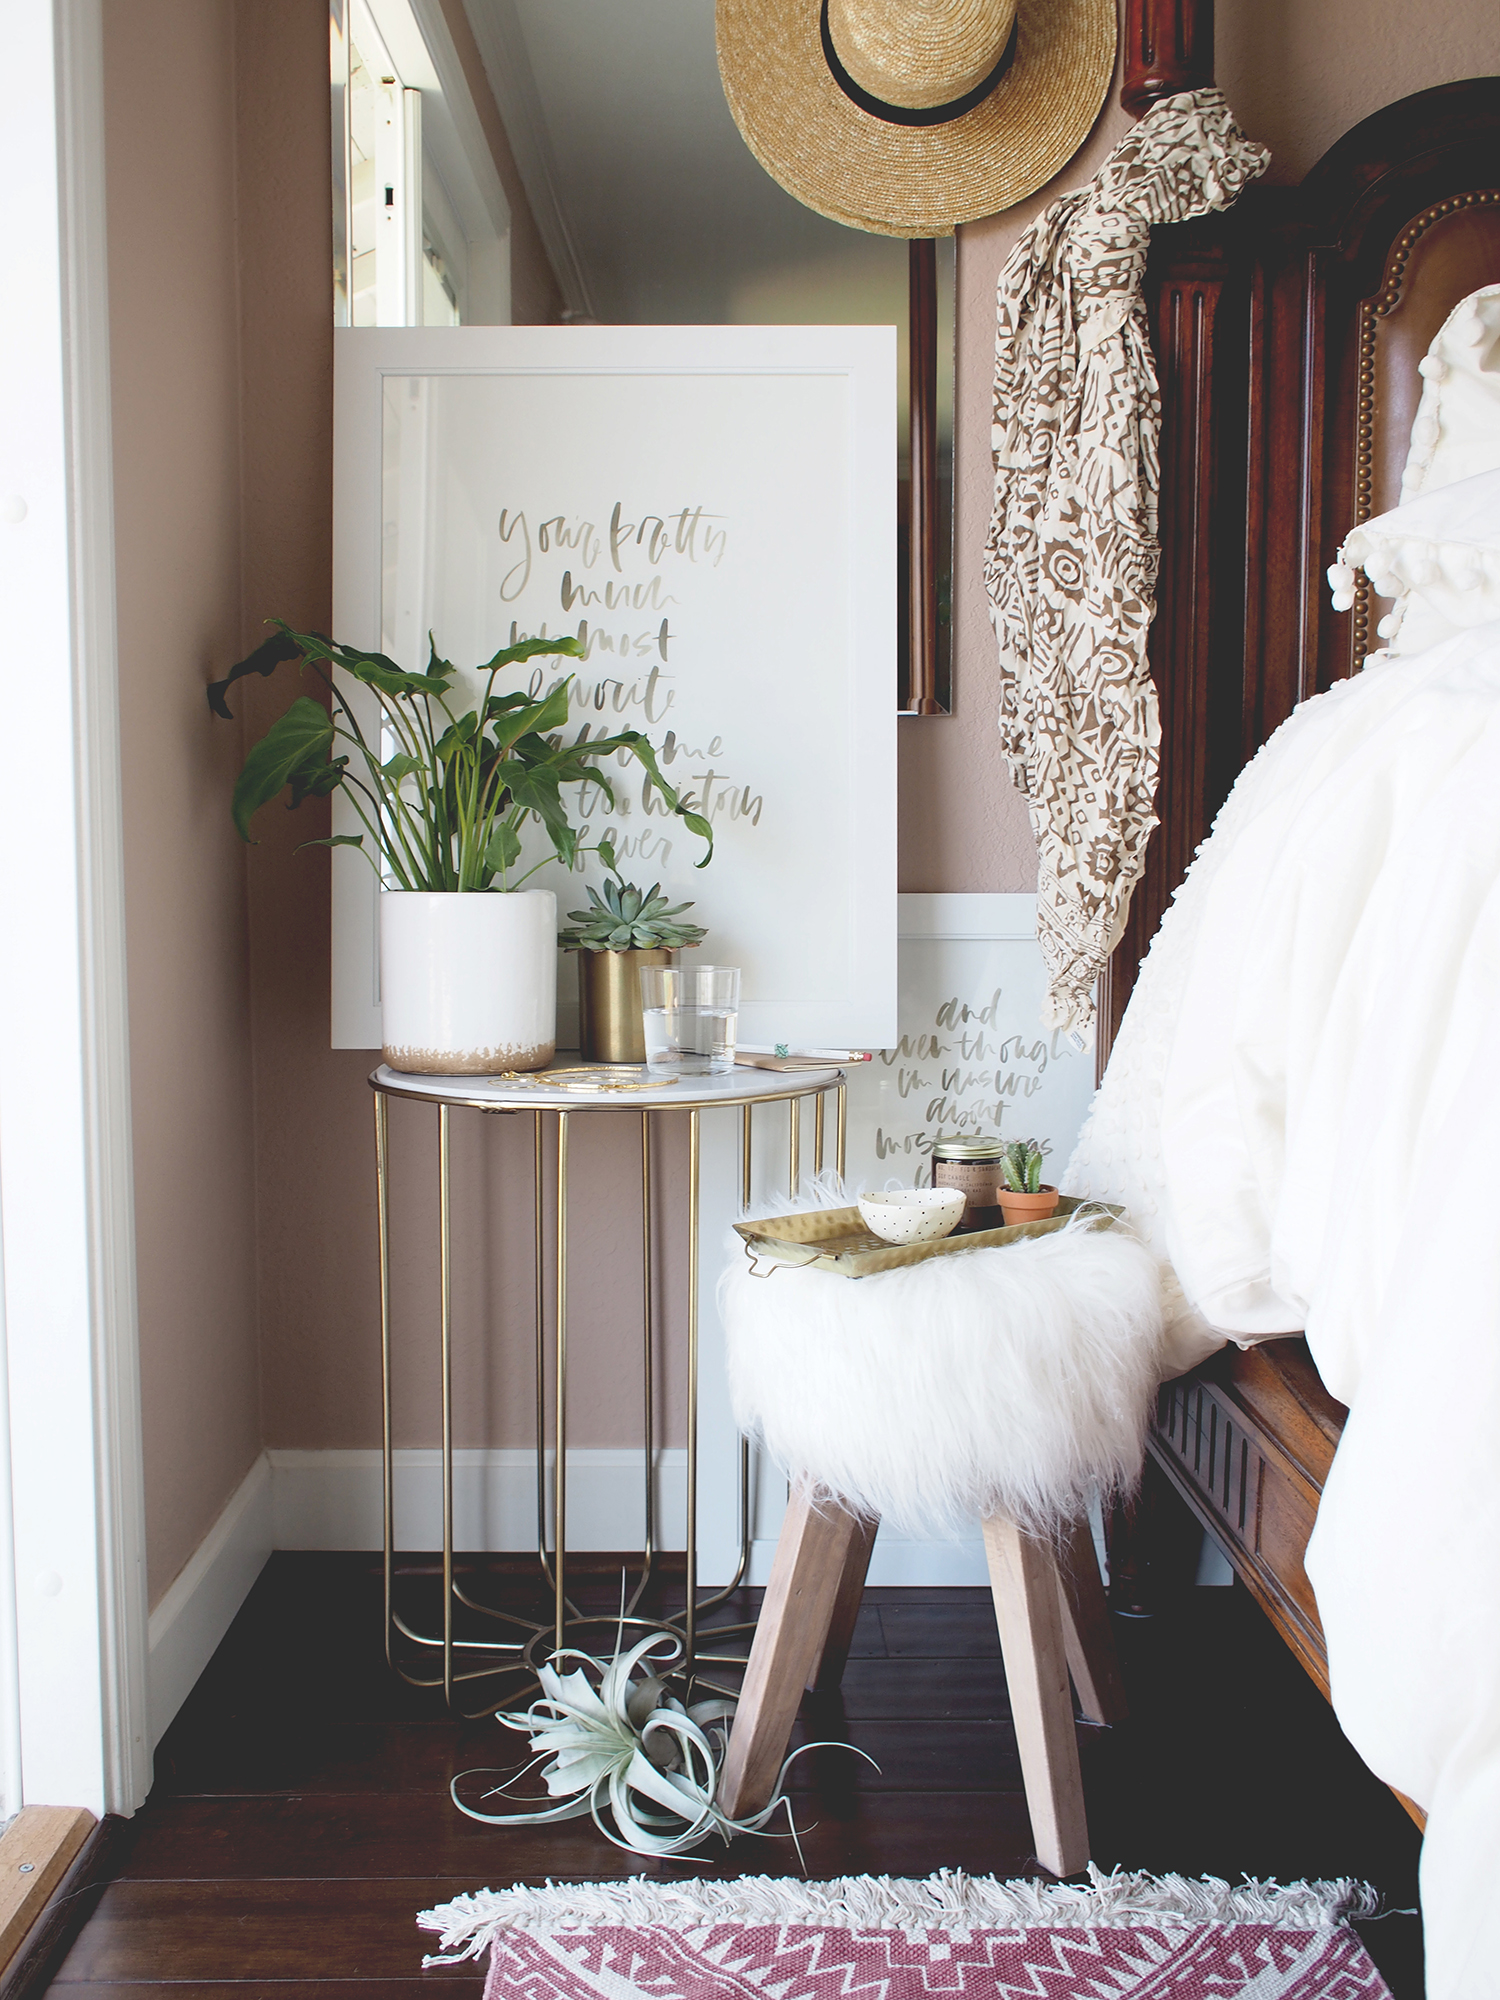 How to update your bedroom summer with a few simple touches | A Fabulous Fete